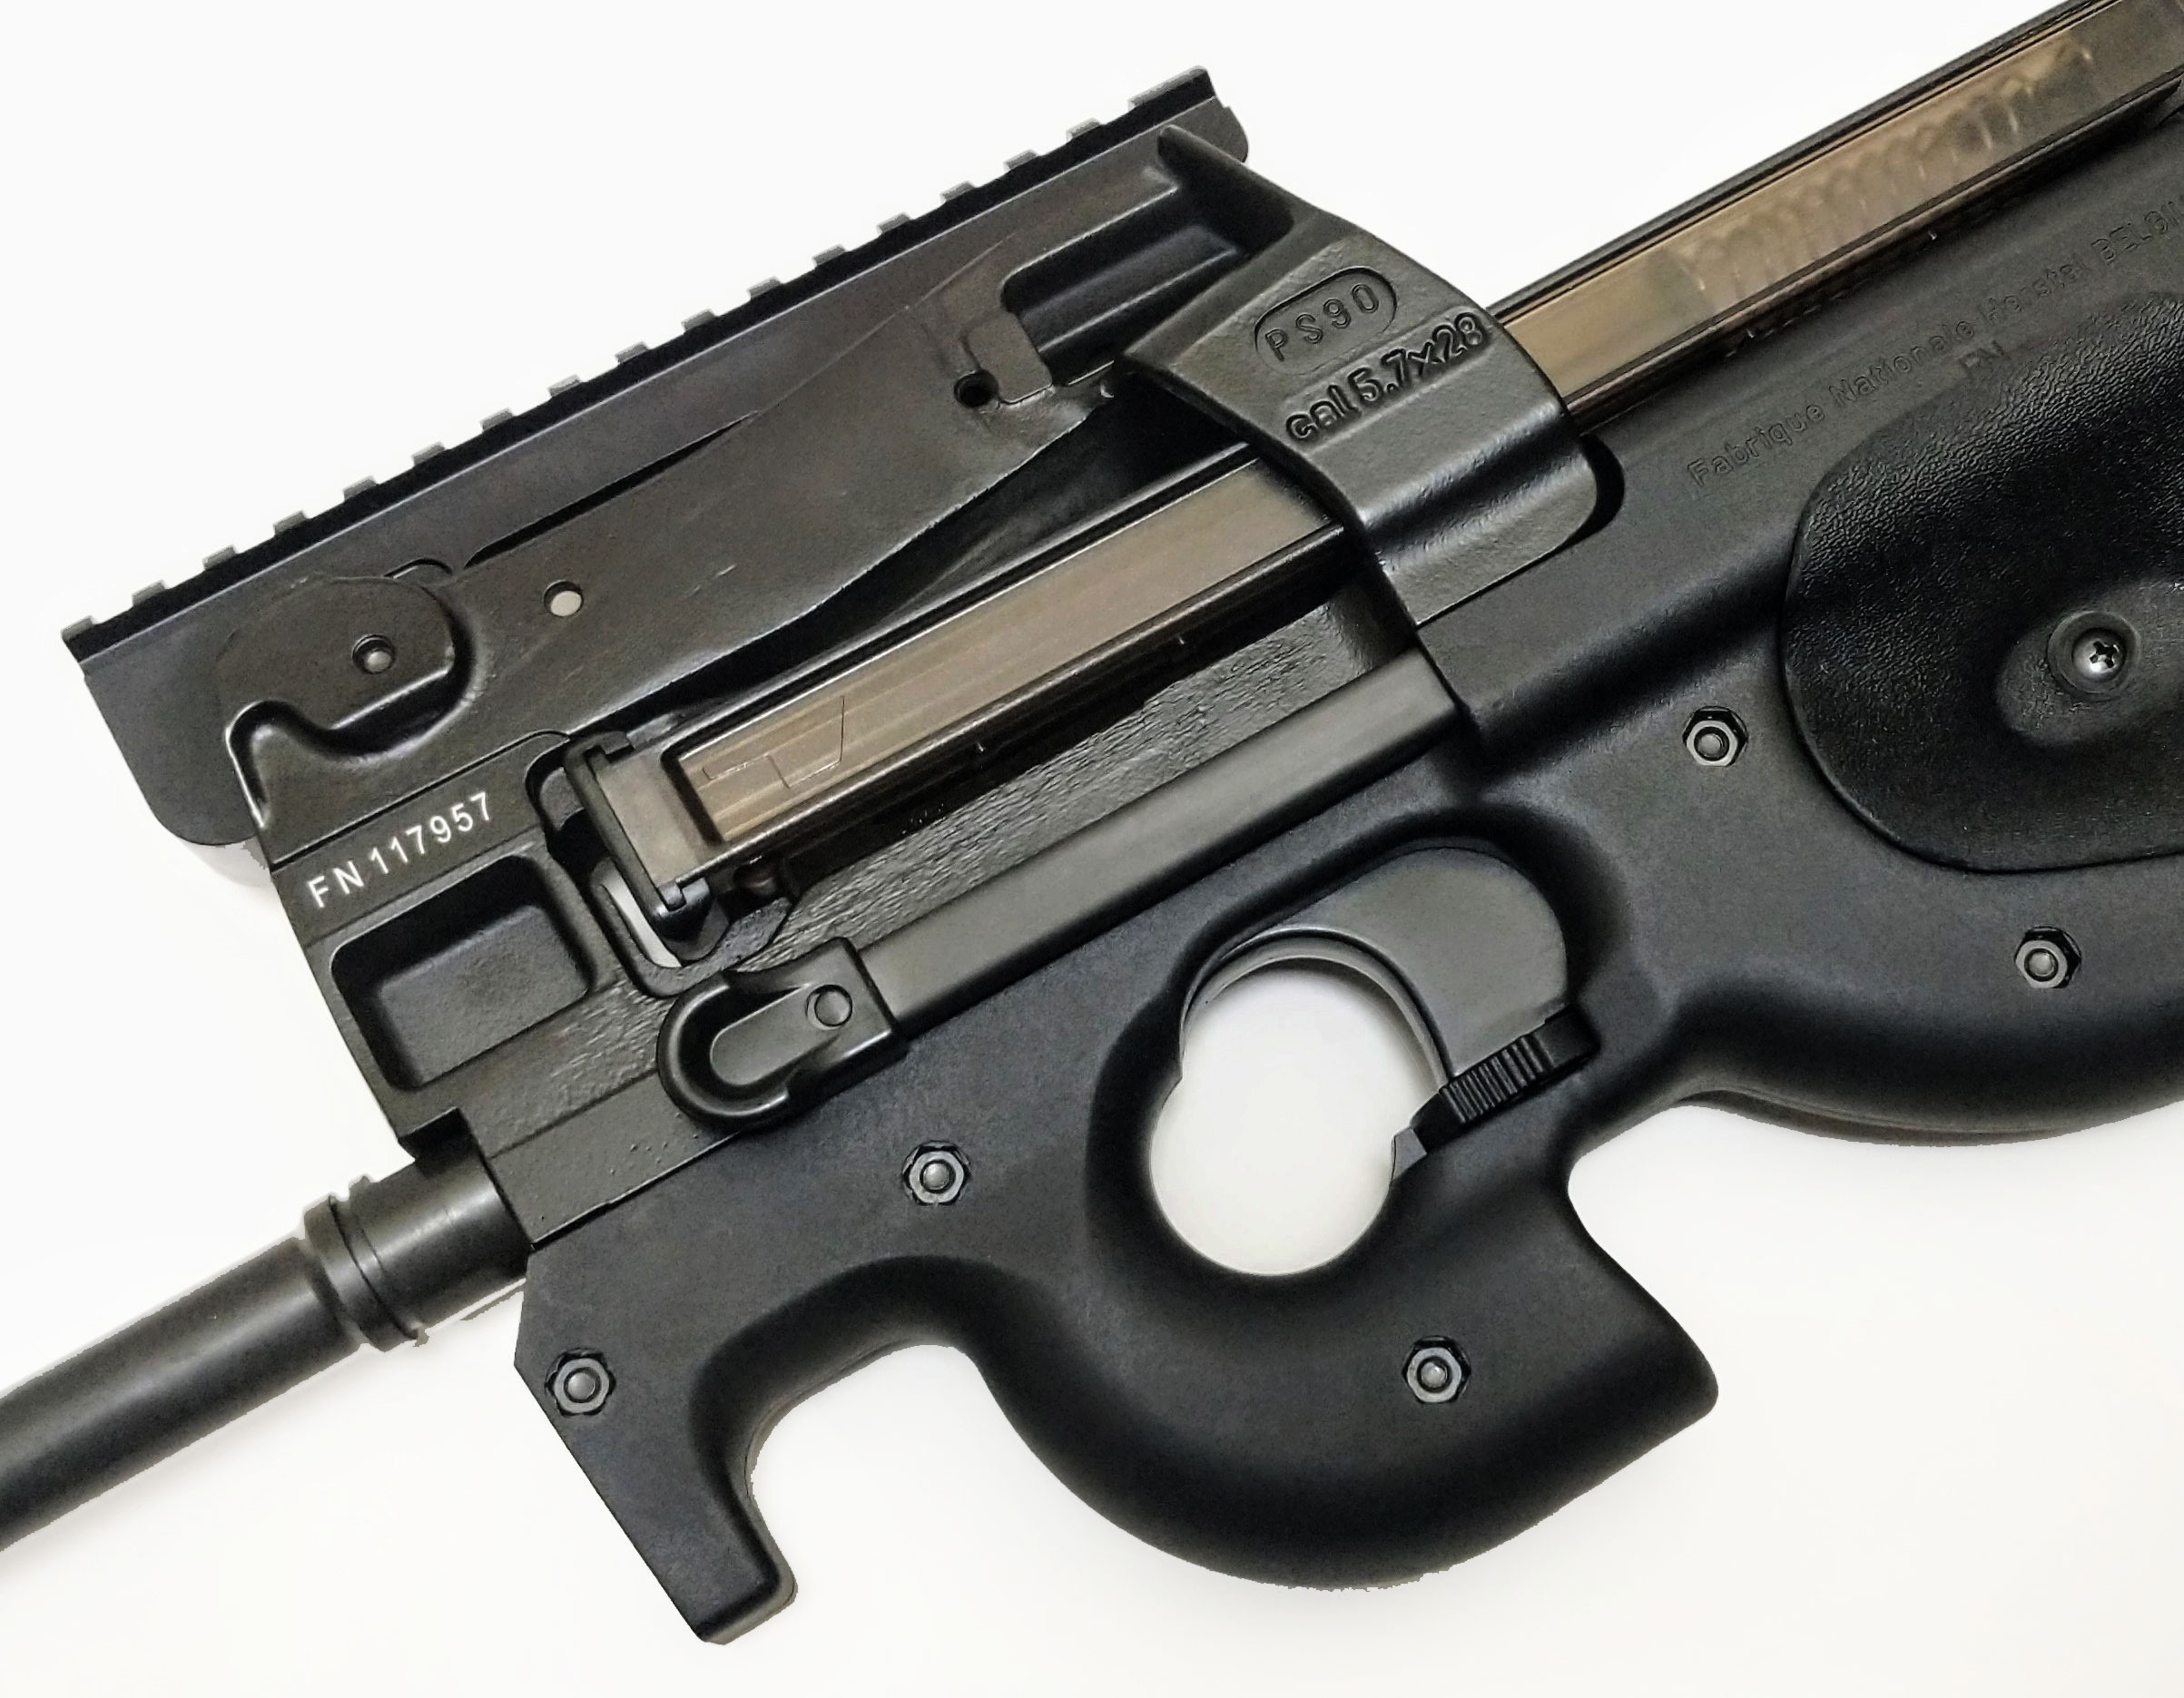 Ps90 For Sale >> Fn Ps90 57x28mm